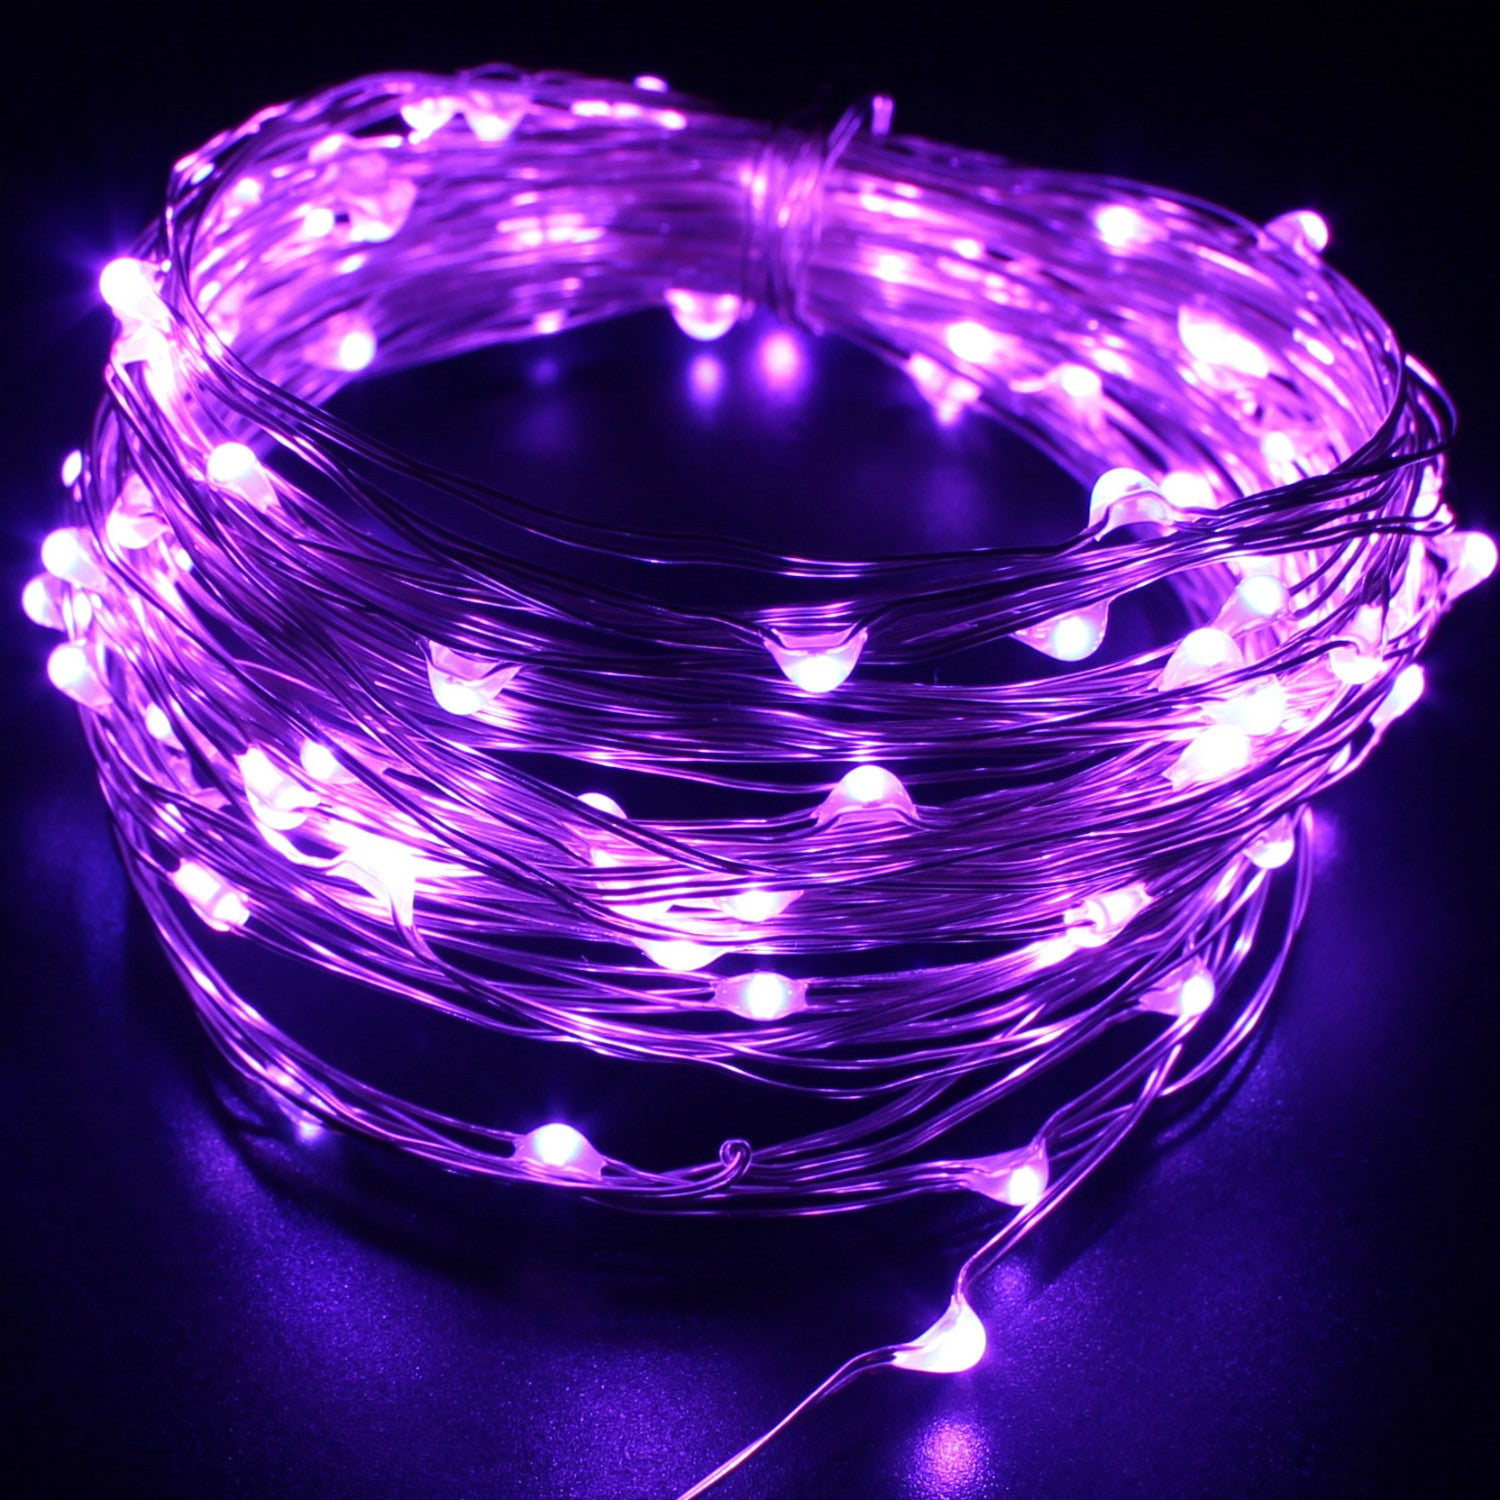 lights string activated el purple led sound light trail efavormart neon rope party purp tube products dazzling